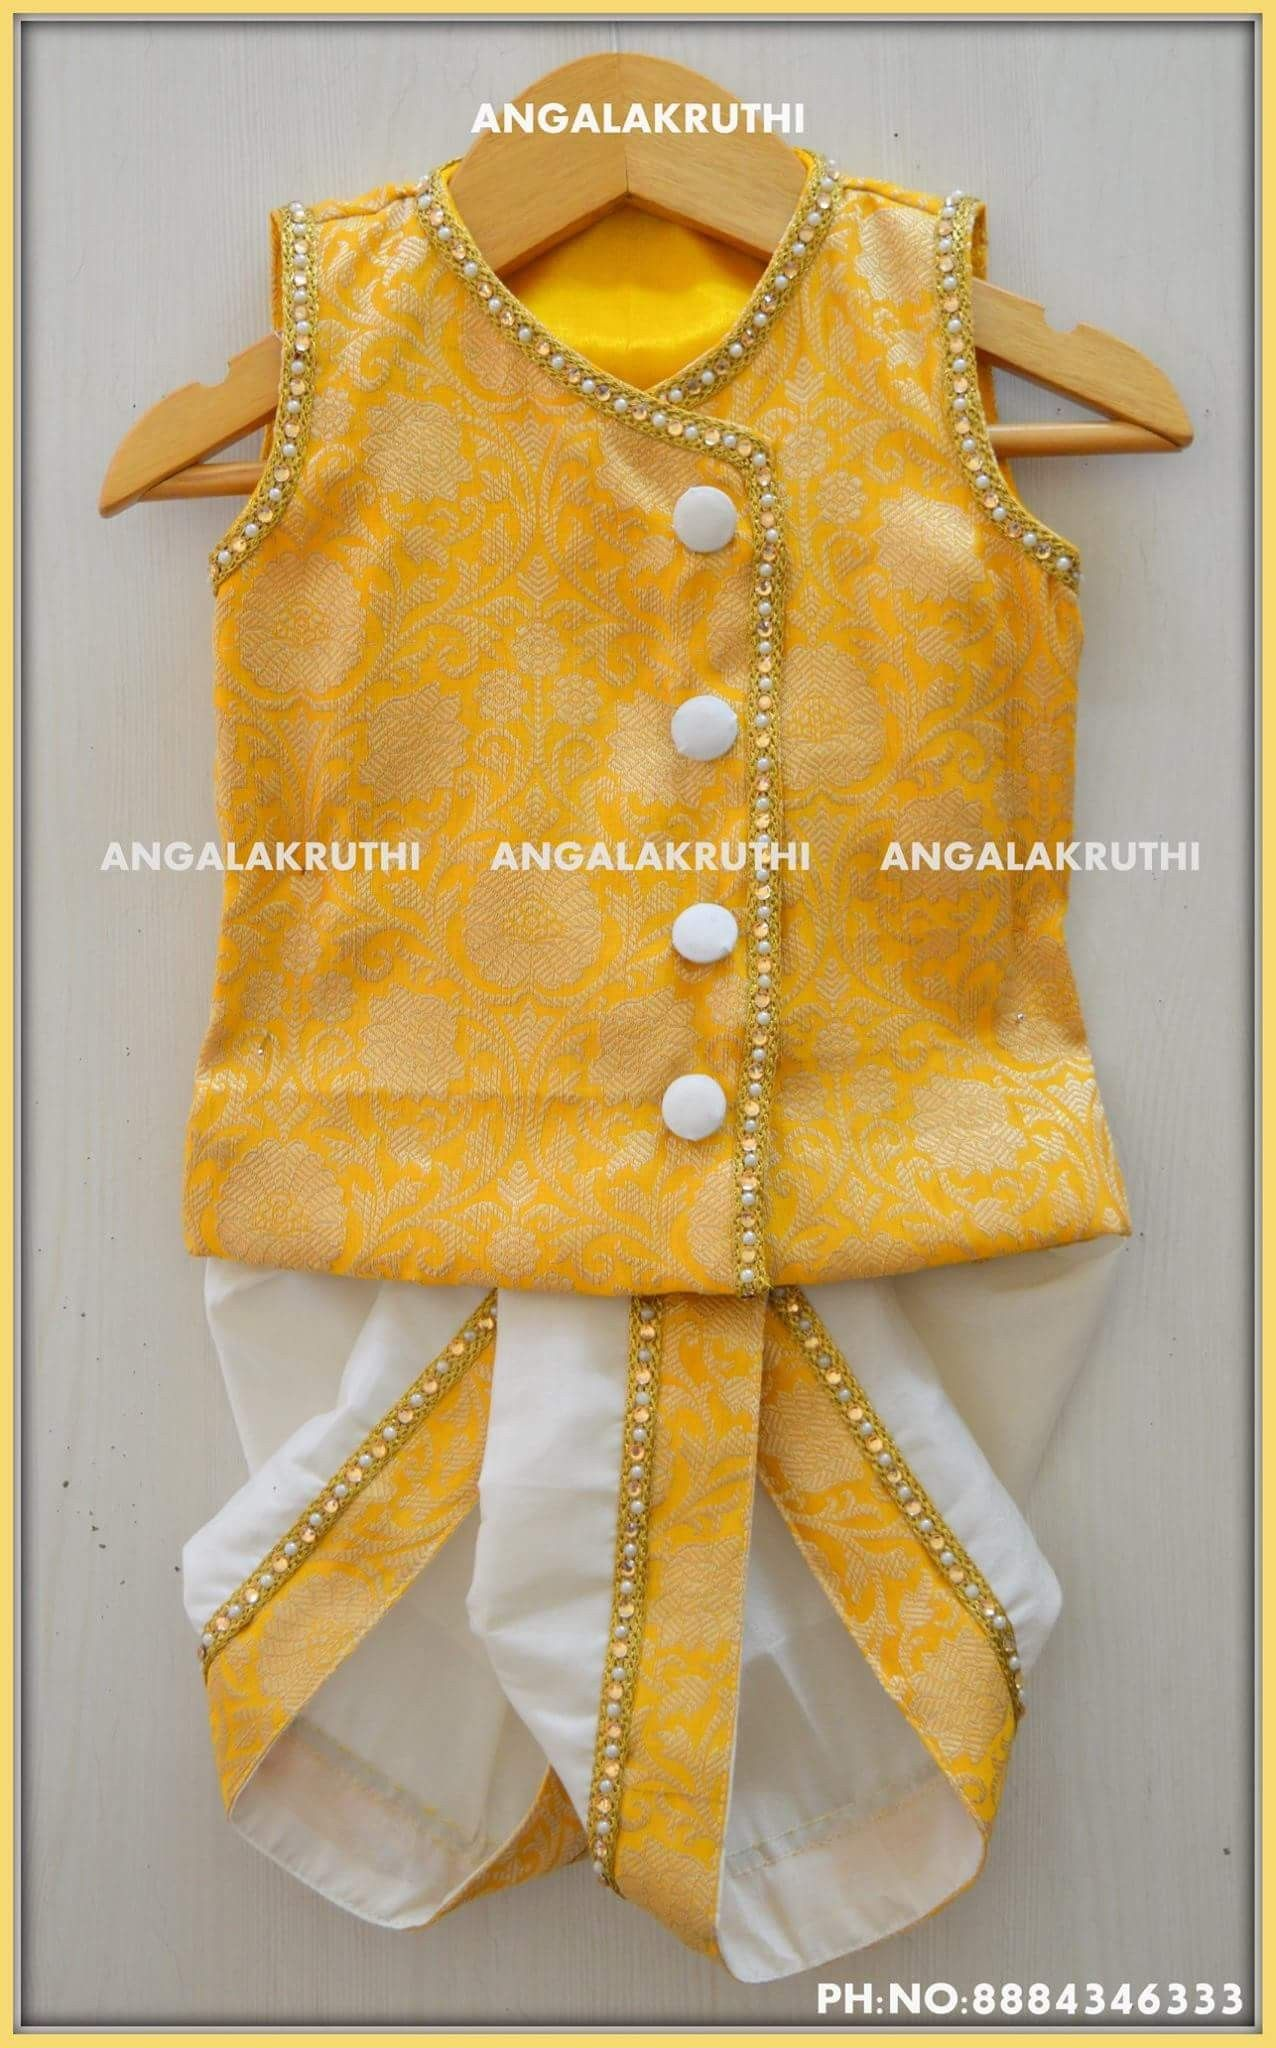 Just born Indian style dress designs by Angalakruthi boutique